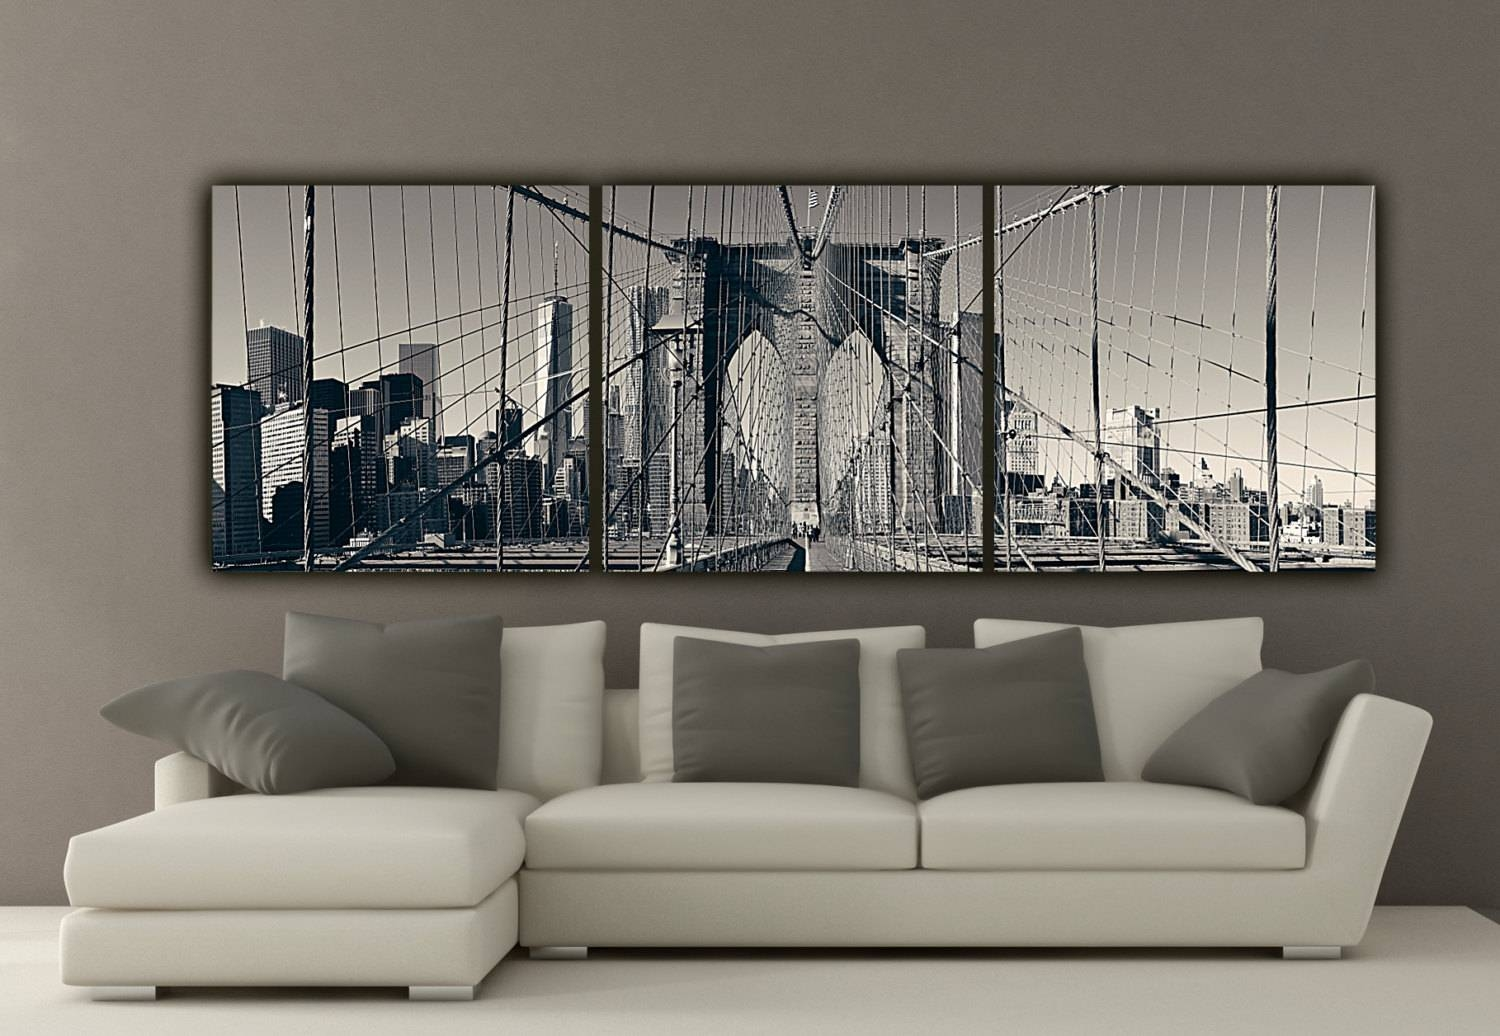 New York Brooklyn Bridge Canvas Wall Art Black And White New in Most Up-to-Date Black And White New York Canvas Wall Art